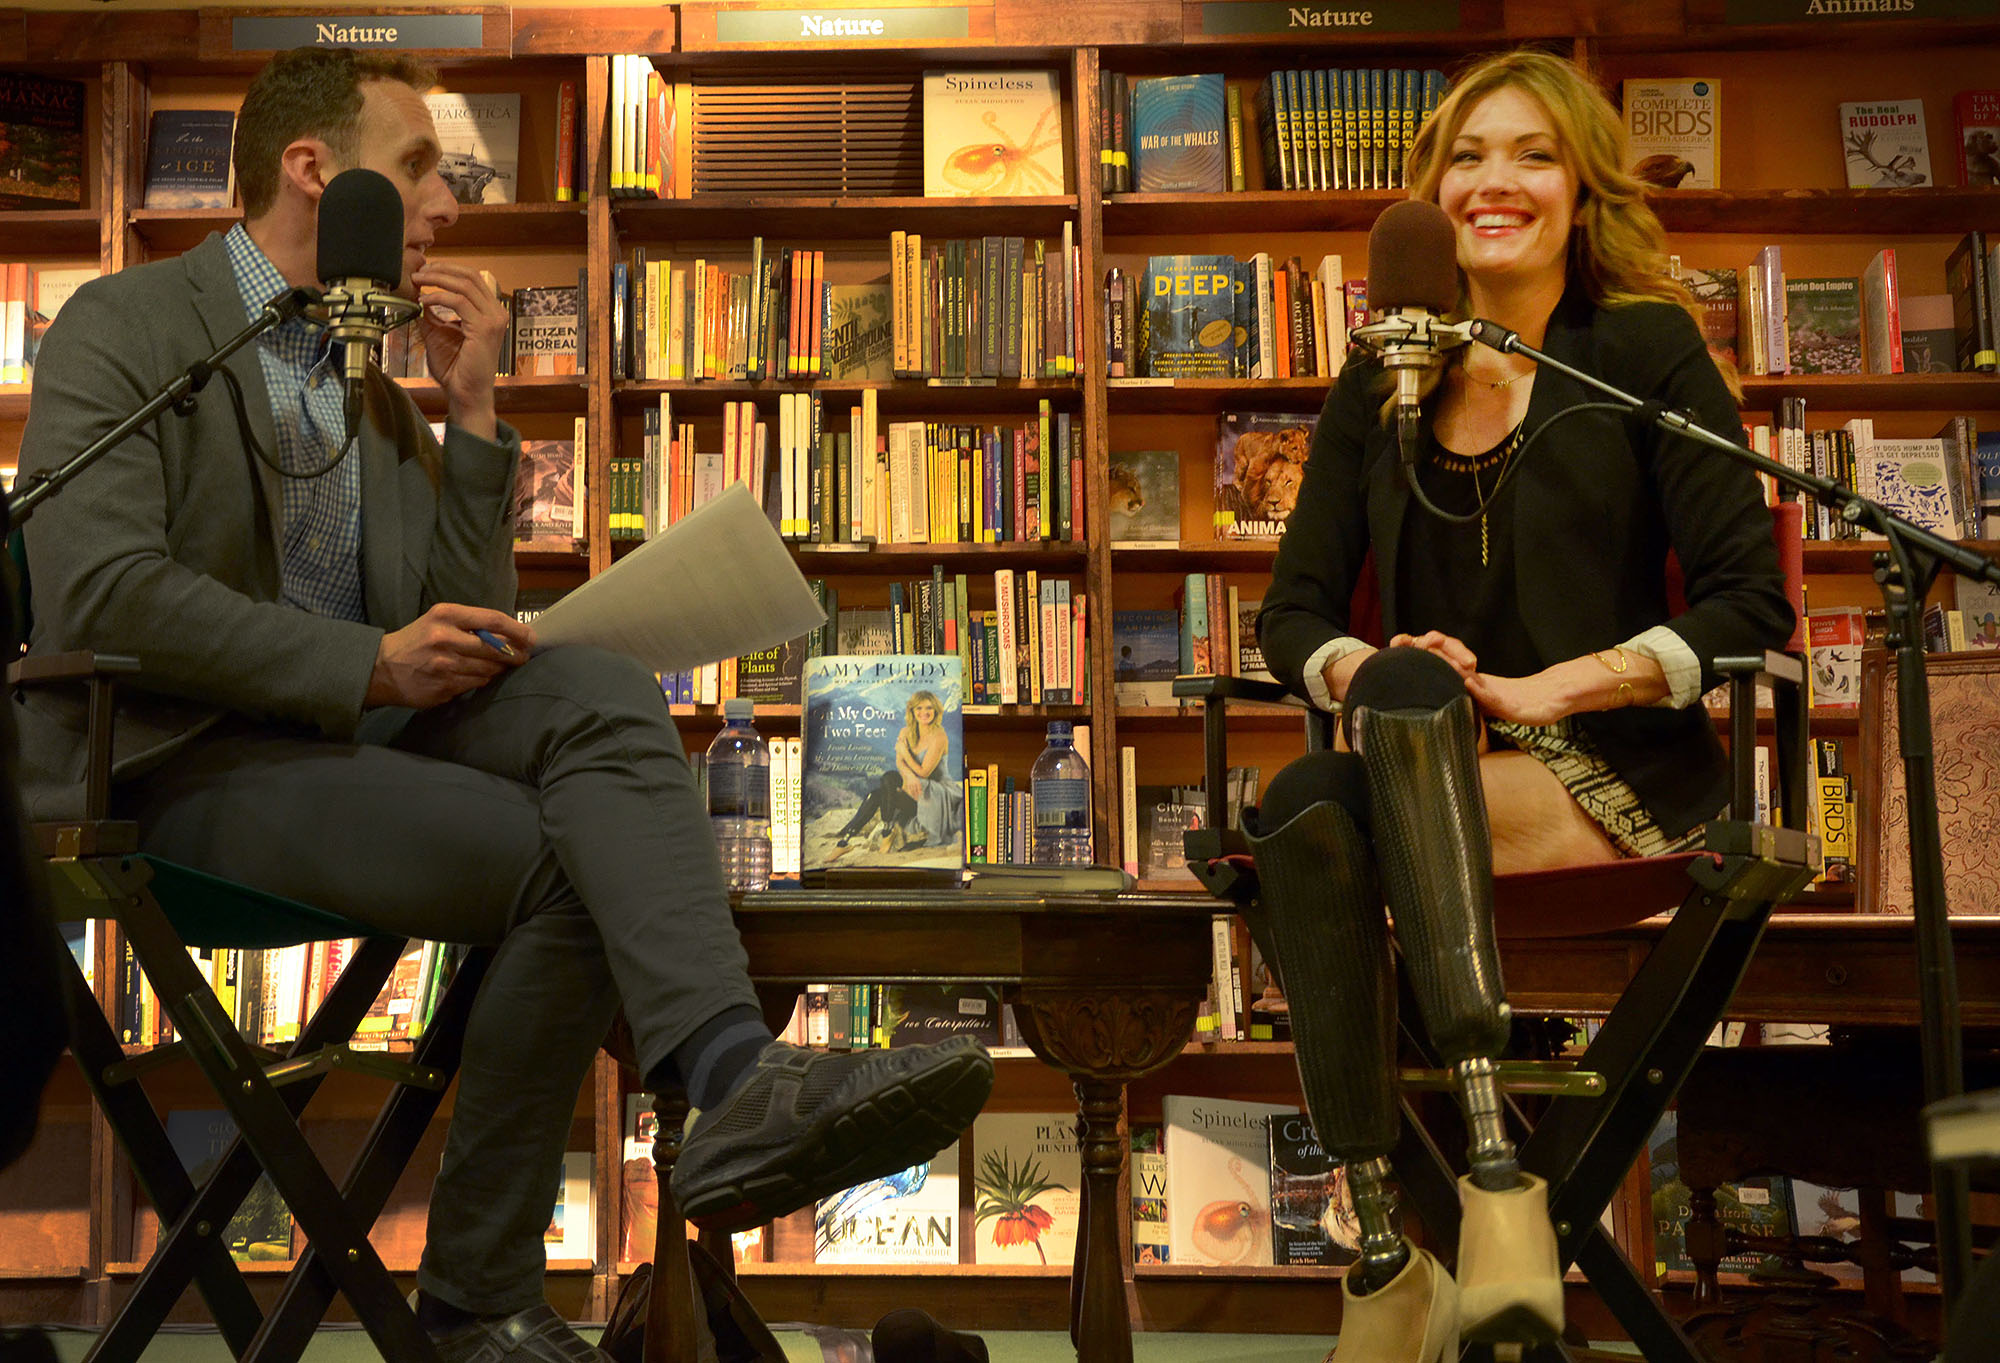 """<p>Amy Purdy, a double amputee, world class snowboarder and finalist on """"Dancing With The Stars,"""" speaks with Ryan Warner at the Tattered Cover on Colfax Avenue in Denver on Monday, Feb. 9, 2015.</p>"""